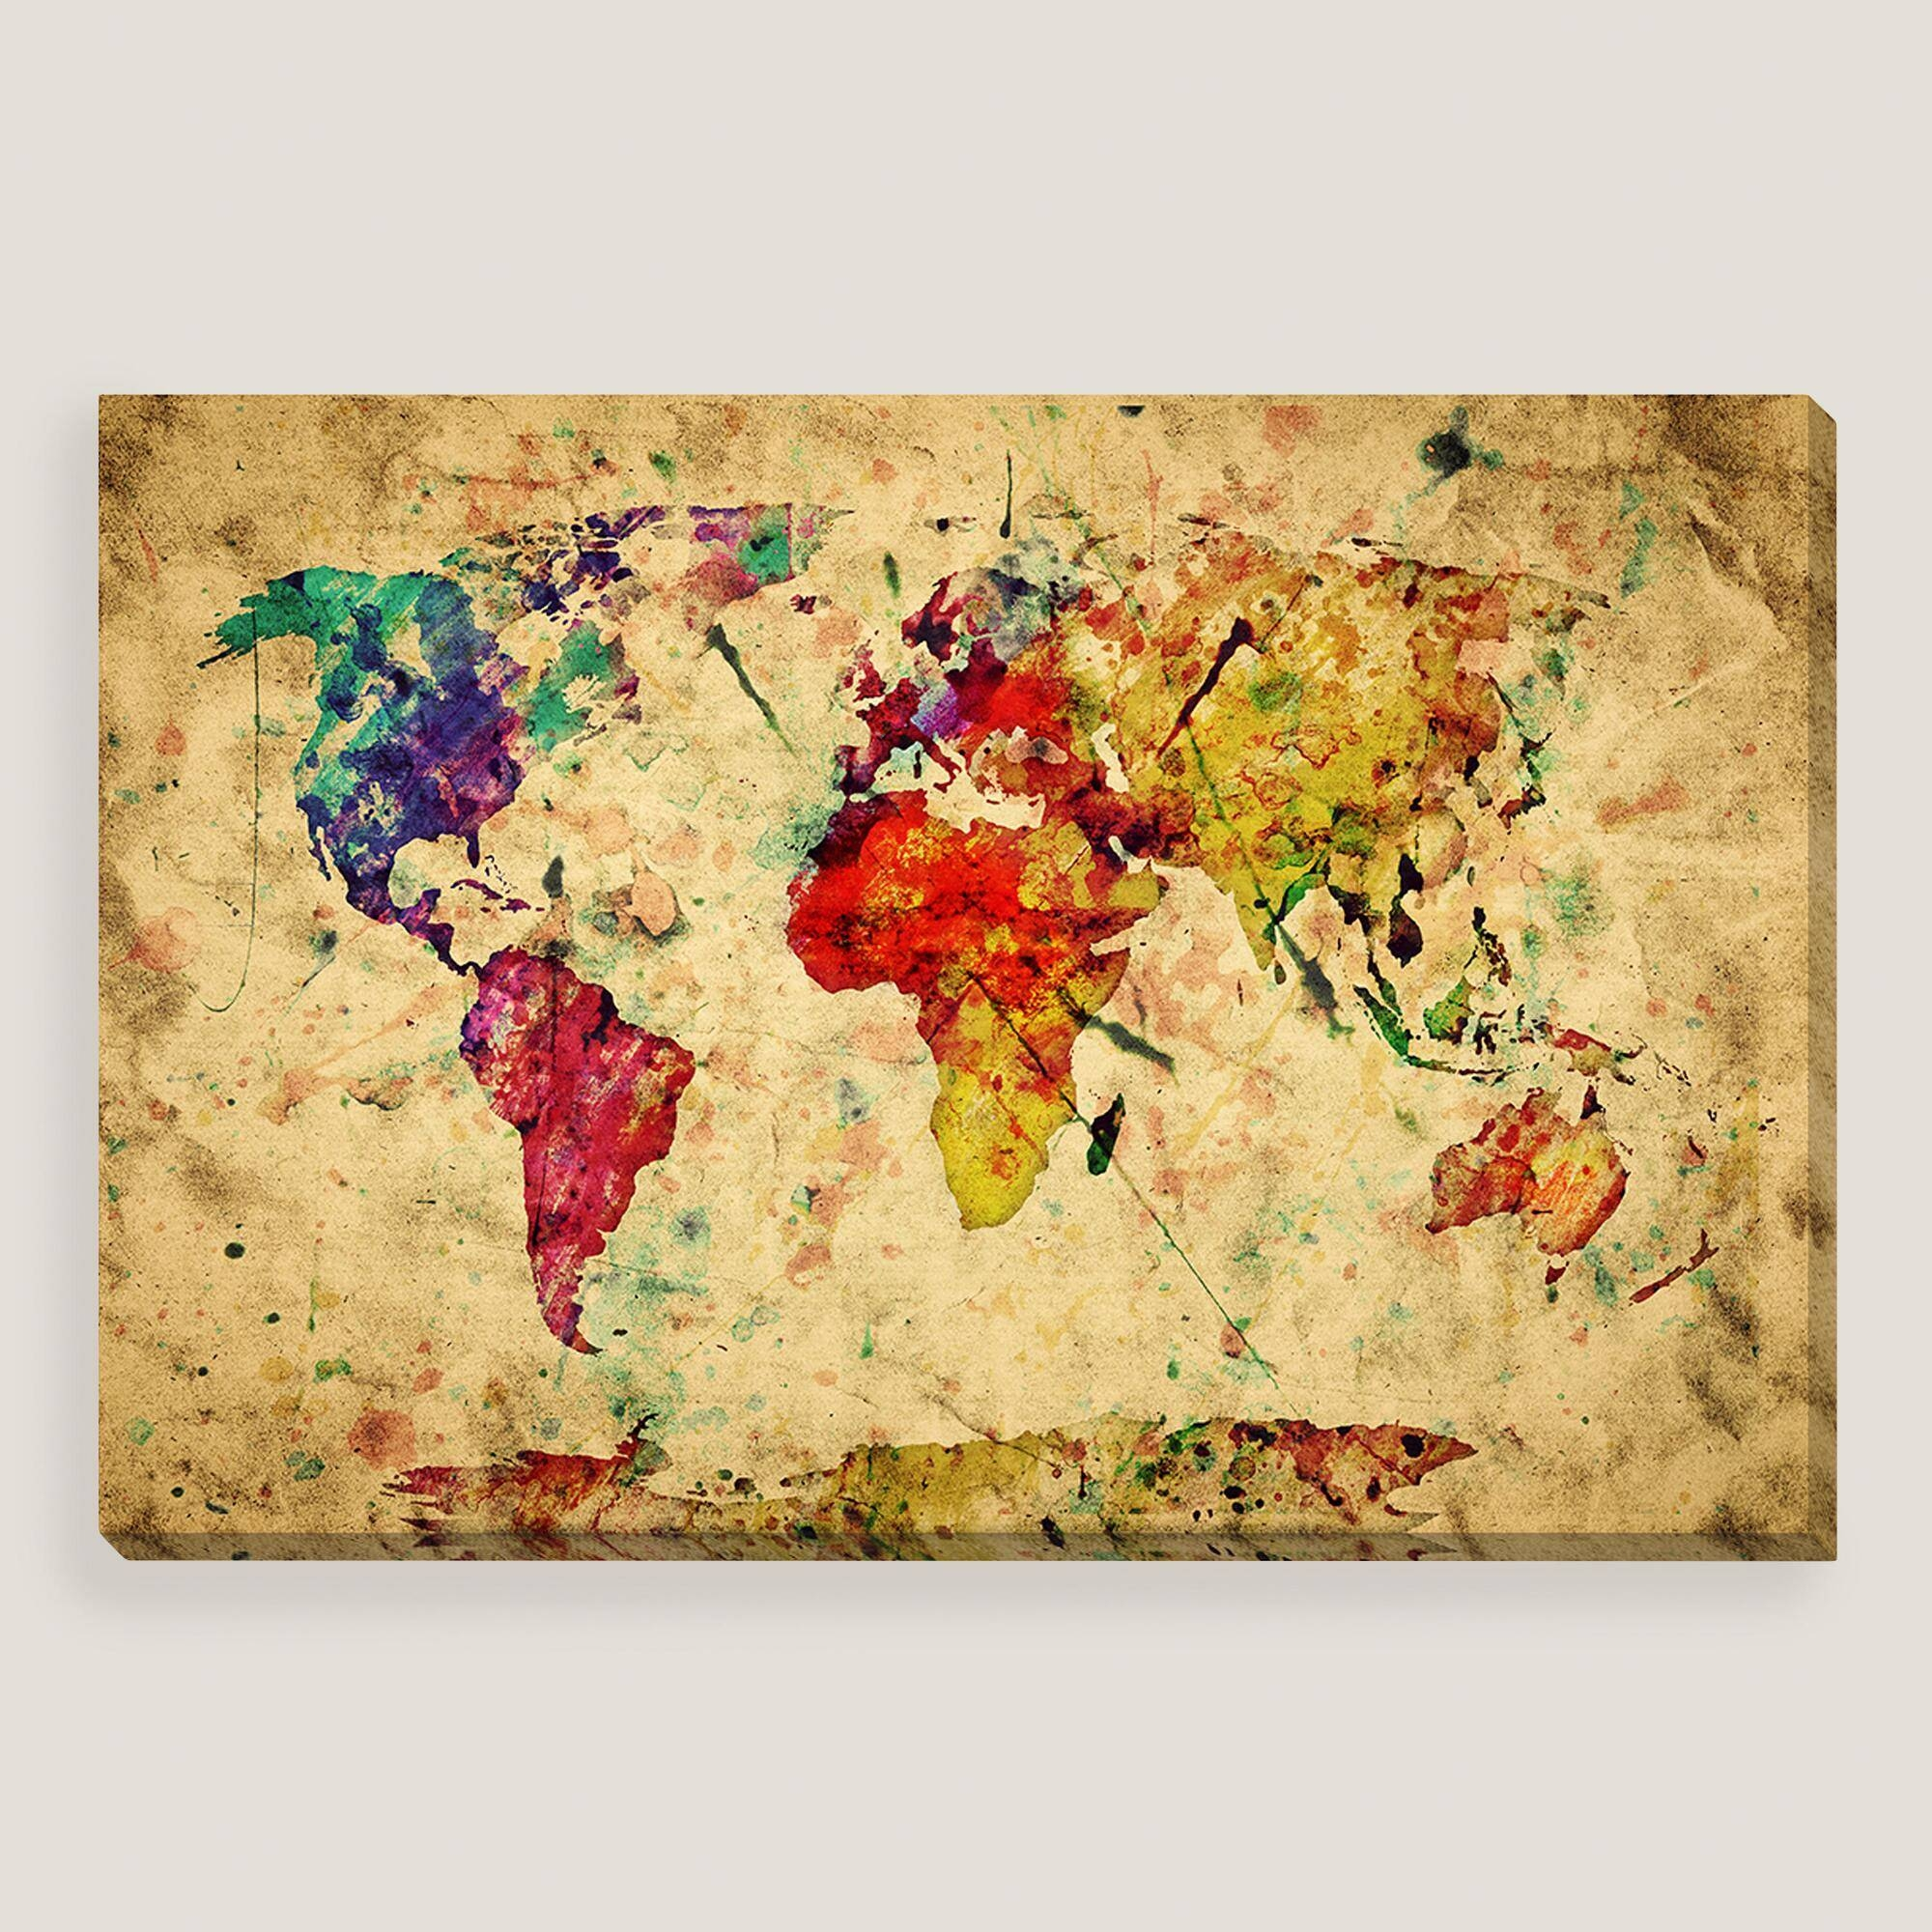 Wall Art Design Ideas: Customize Framed Vintage World Map Wall Art In Most Popular Framed World Map Wall Art (View 12 of 20)